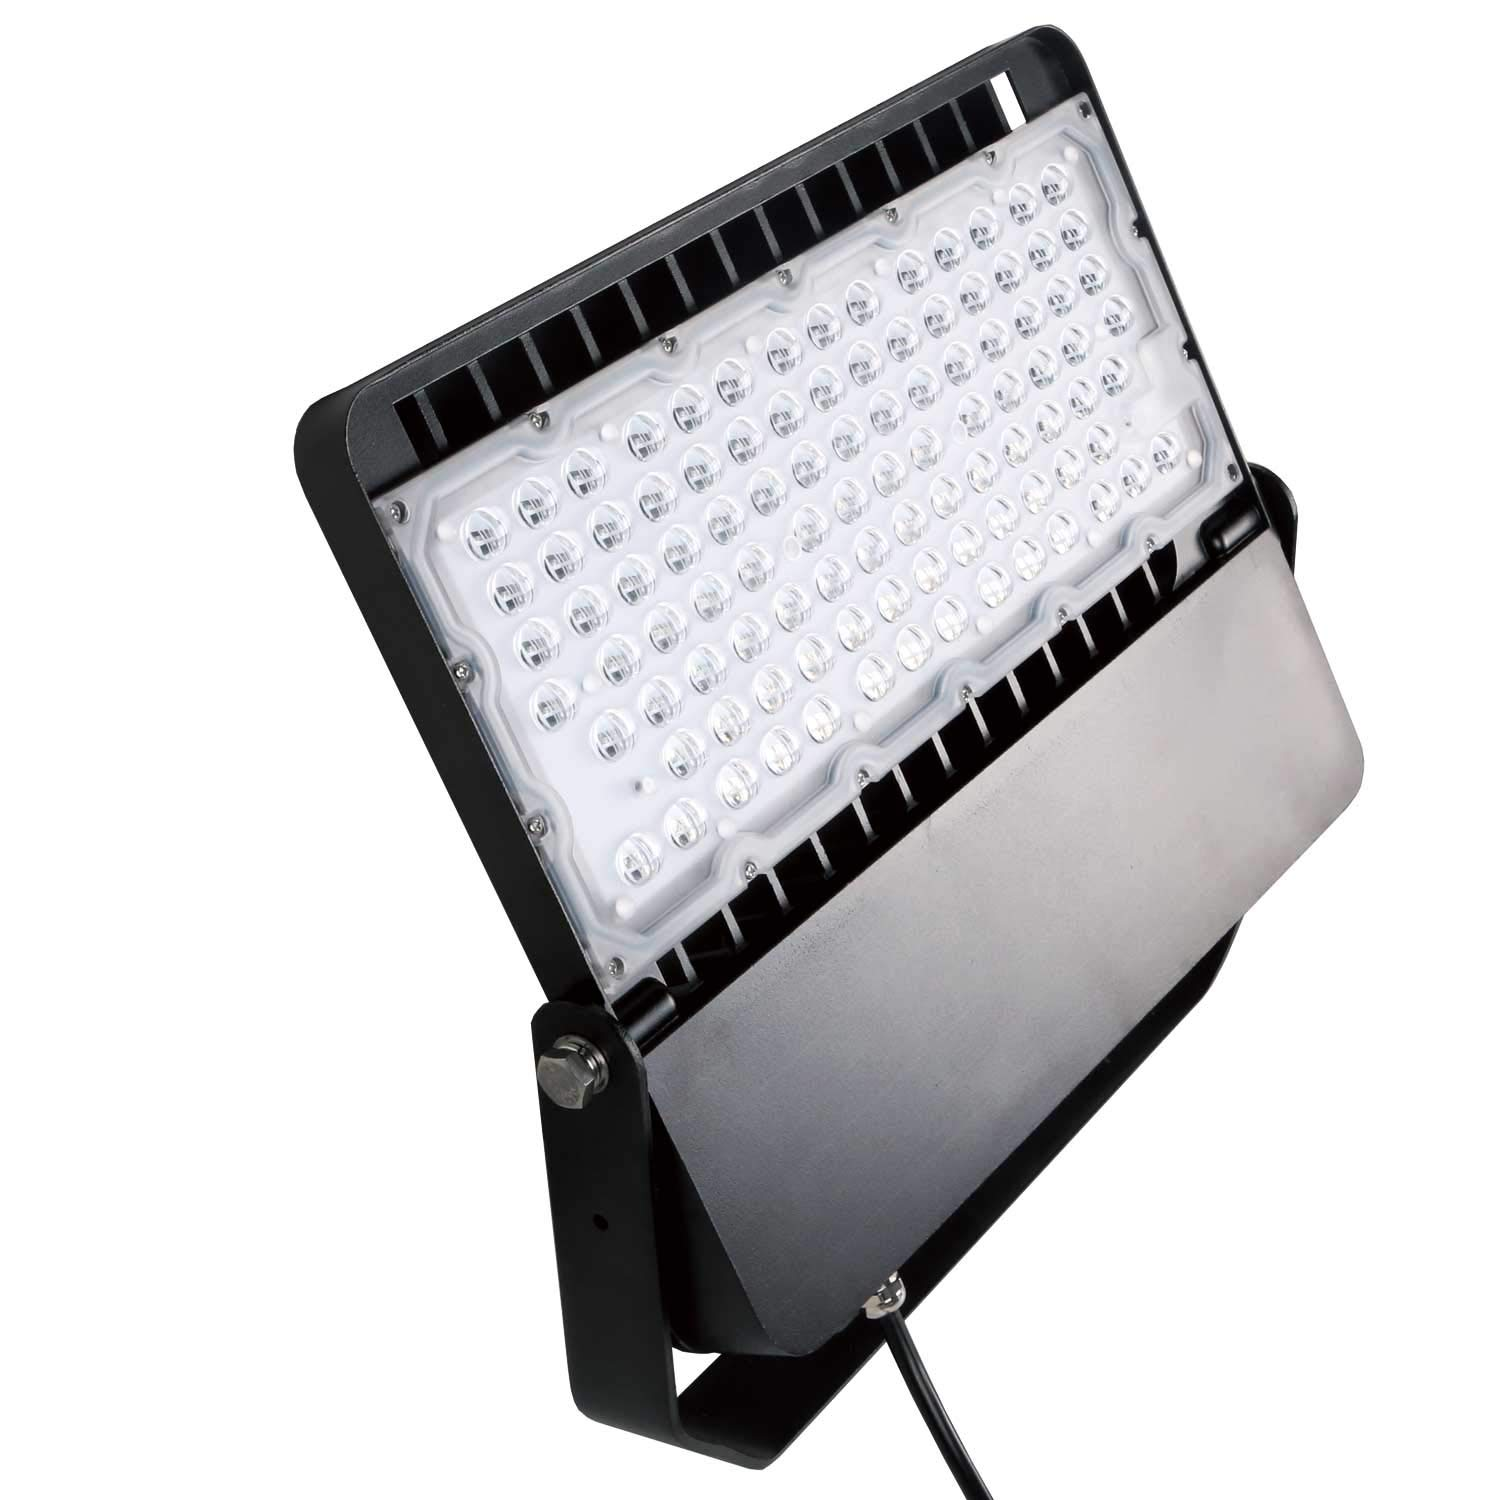 AntLux LED Flood Light 200W, Super Bright Stadium Lights, Outdoor Parking Lot Shoebox Arena Perimeter and Security Lighting fixtures, (1200W Equivalent), 26000LM, 5000K, IP66 Waterproof LED Floodlight